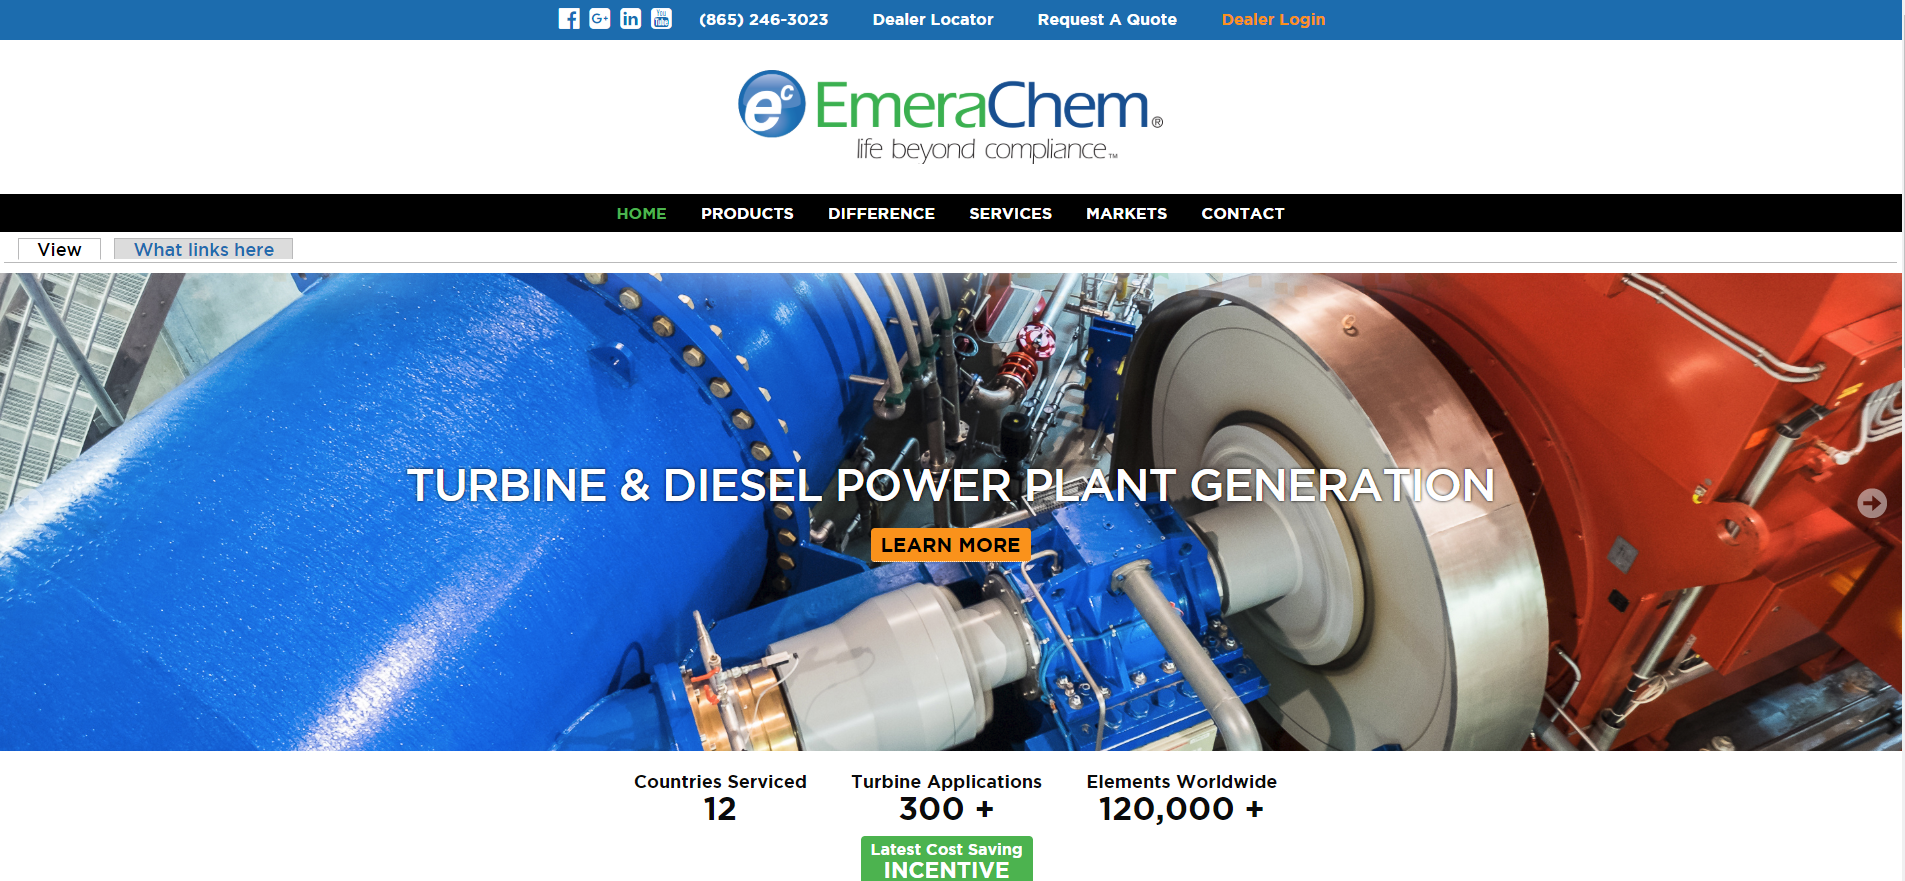 Emerachem Website - In the summer of 2016, EmeraChem decided to redesign their website with our creative guidance. In order to further EmeraChem's focus on Dealer Network Effectiveness and the EmeraChem Toolbox, we designed a website to continue focusing on these two key areas.